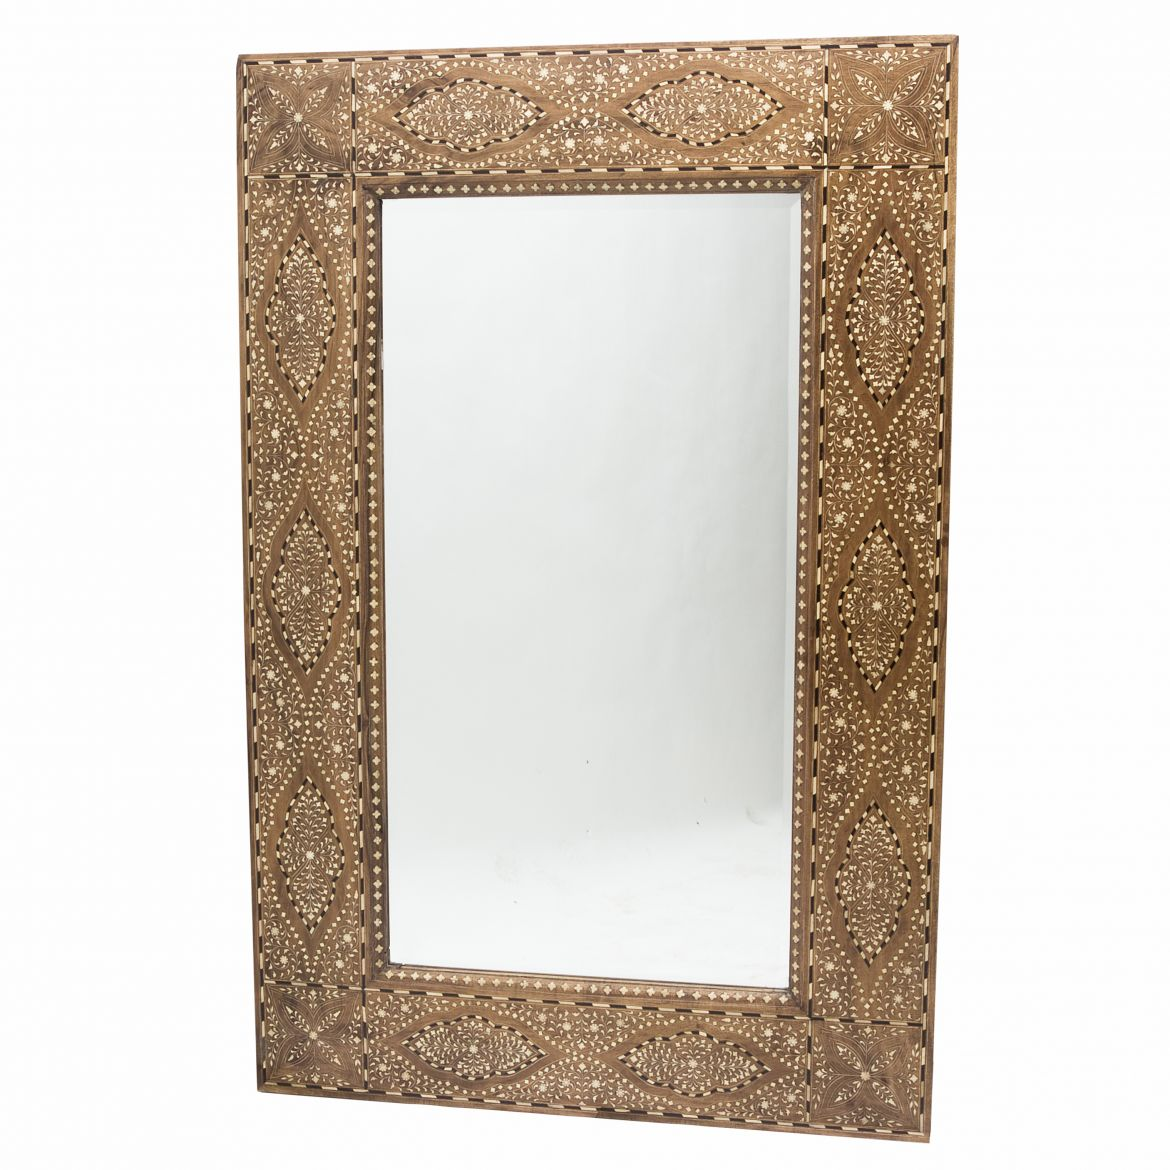 Arabesque Inlaid Mirror